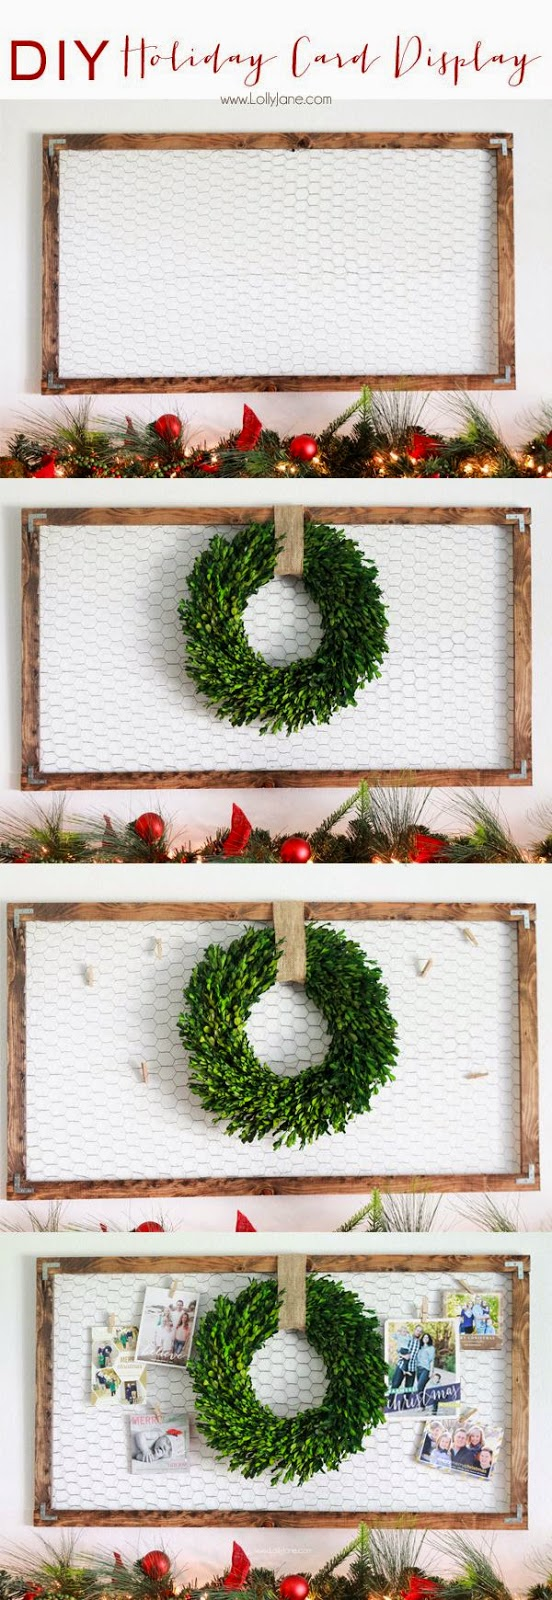 Susieqtpies cafe top creative holiday card display ideas - Christmas card display ideas ...